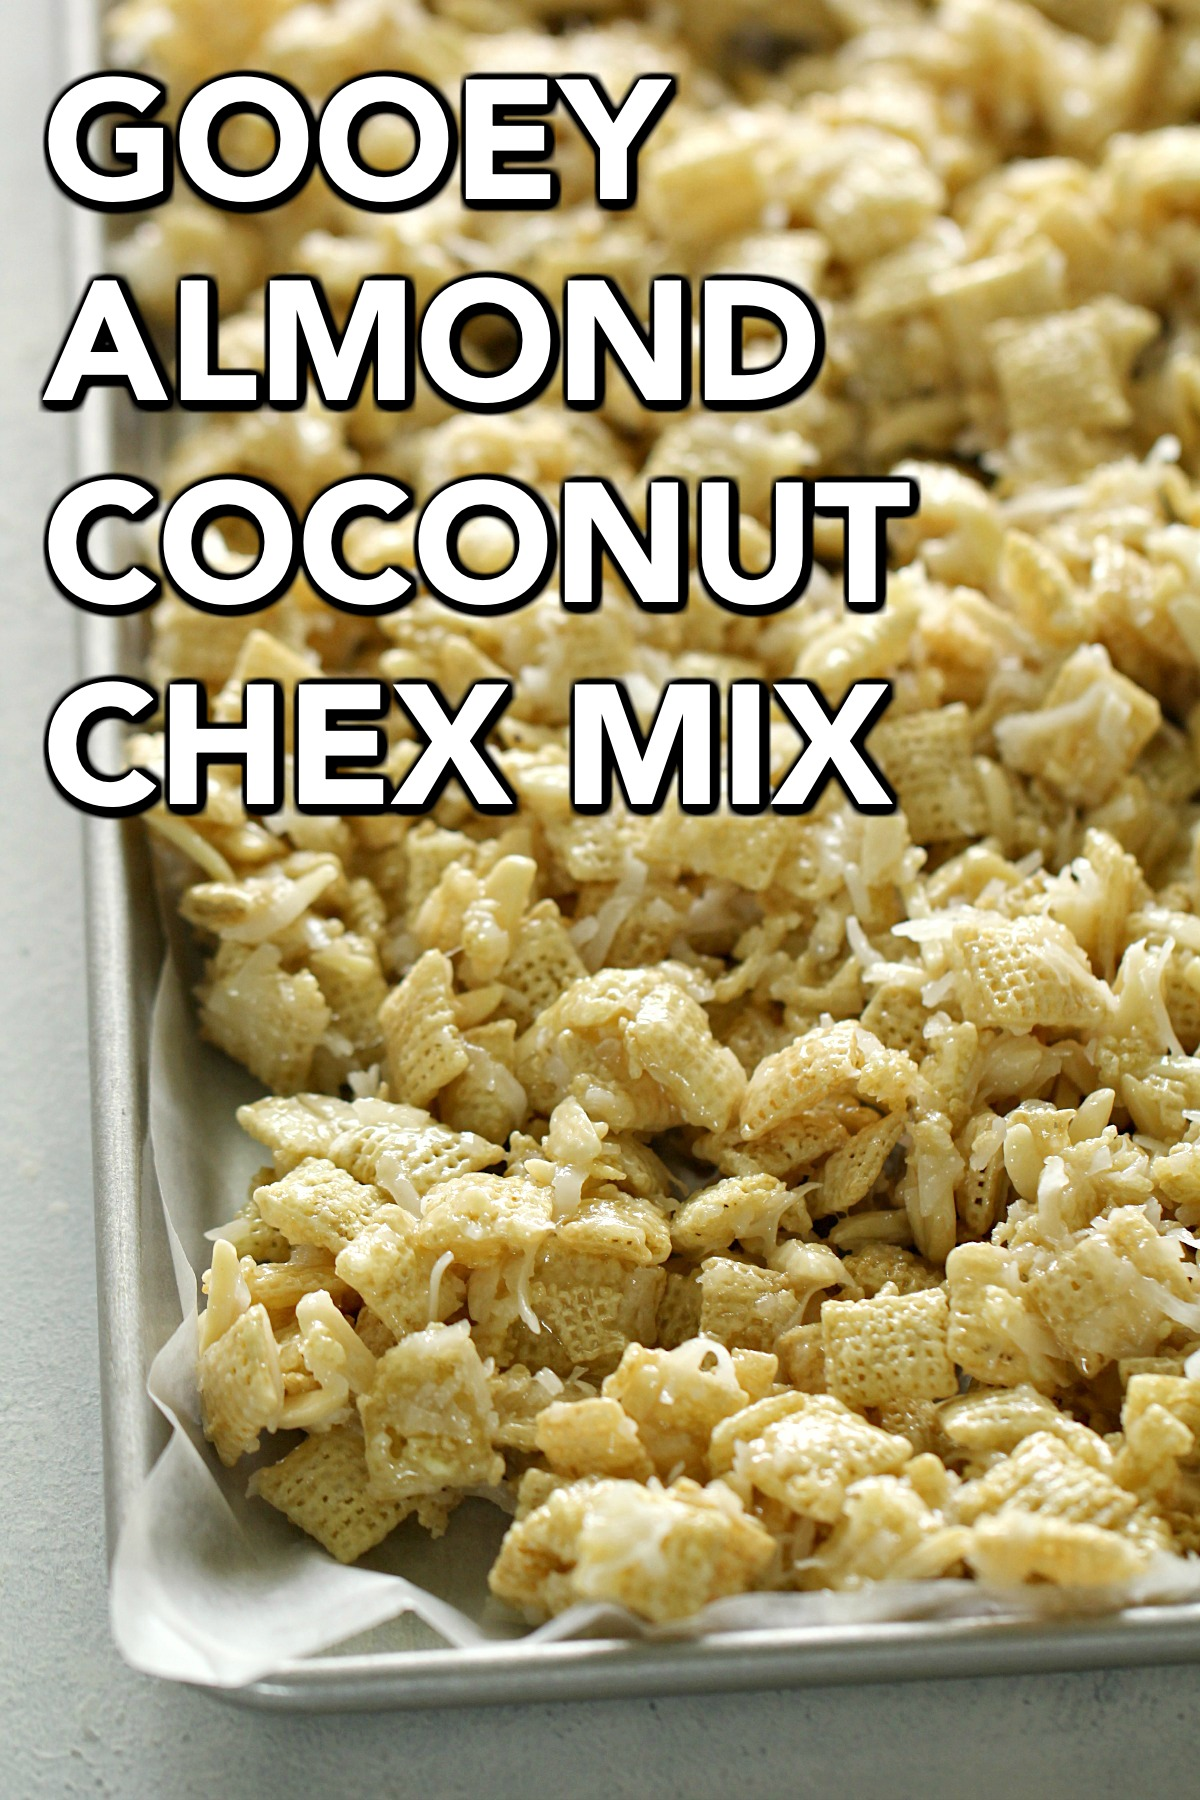 Gooey Chex Mix with title on image